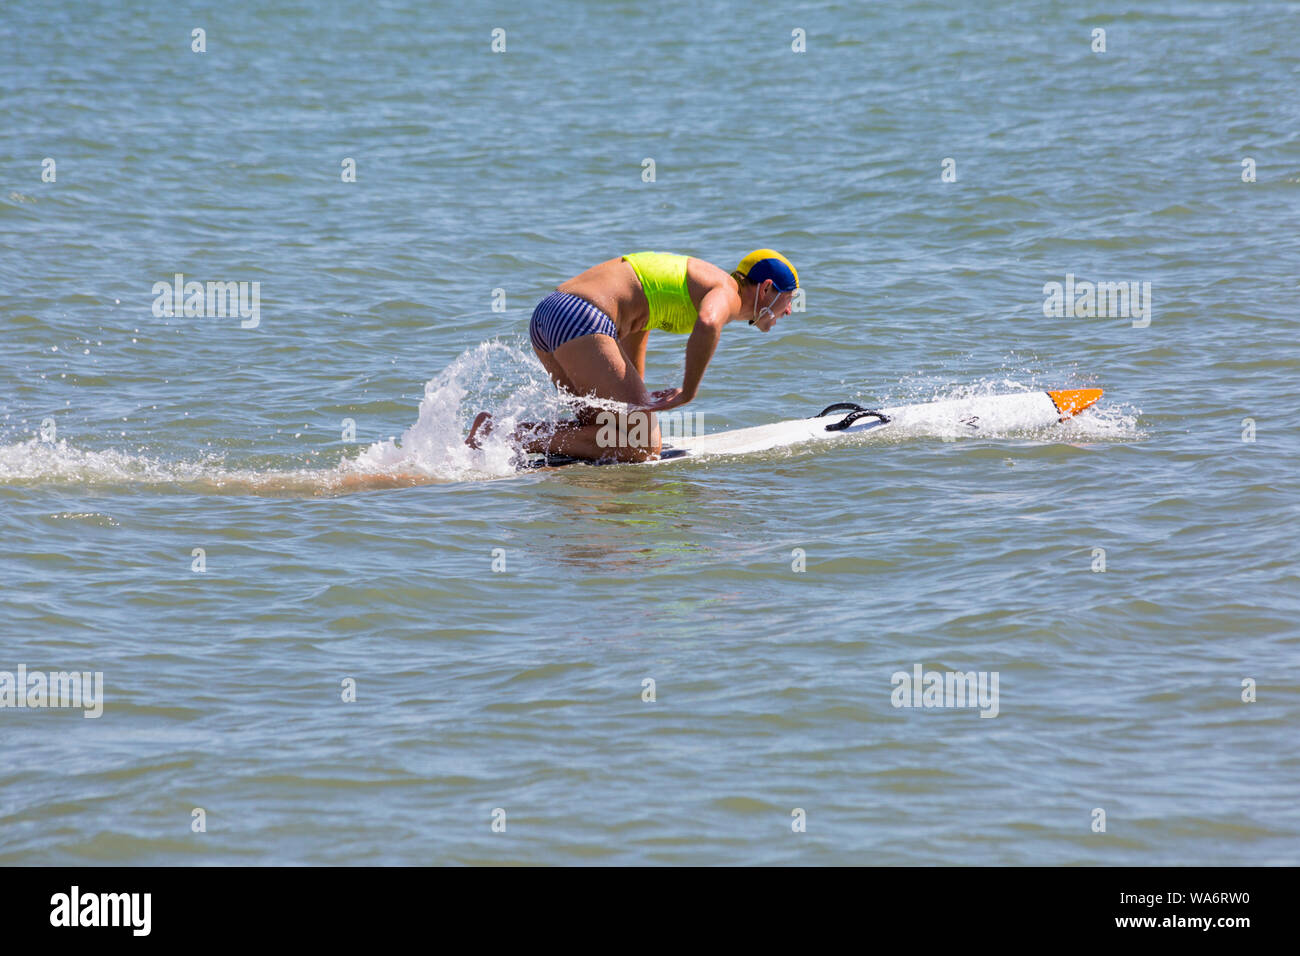 Branksome Chine, Poole, Dorset UK. 18th Aug 2019. GB Surf Life Saving National Championships take place at Branksome Chine beach. Branksome Chine Life Saving Club host the event, the first time ever a club outside of Devon and Cornwall have been invited to host the entire event. Credit: Carolyn Jenkins/Alamy Live News Stock Photo